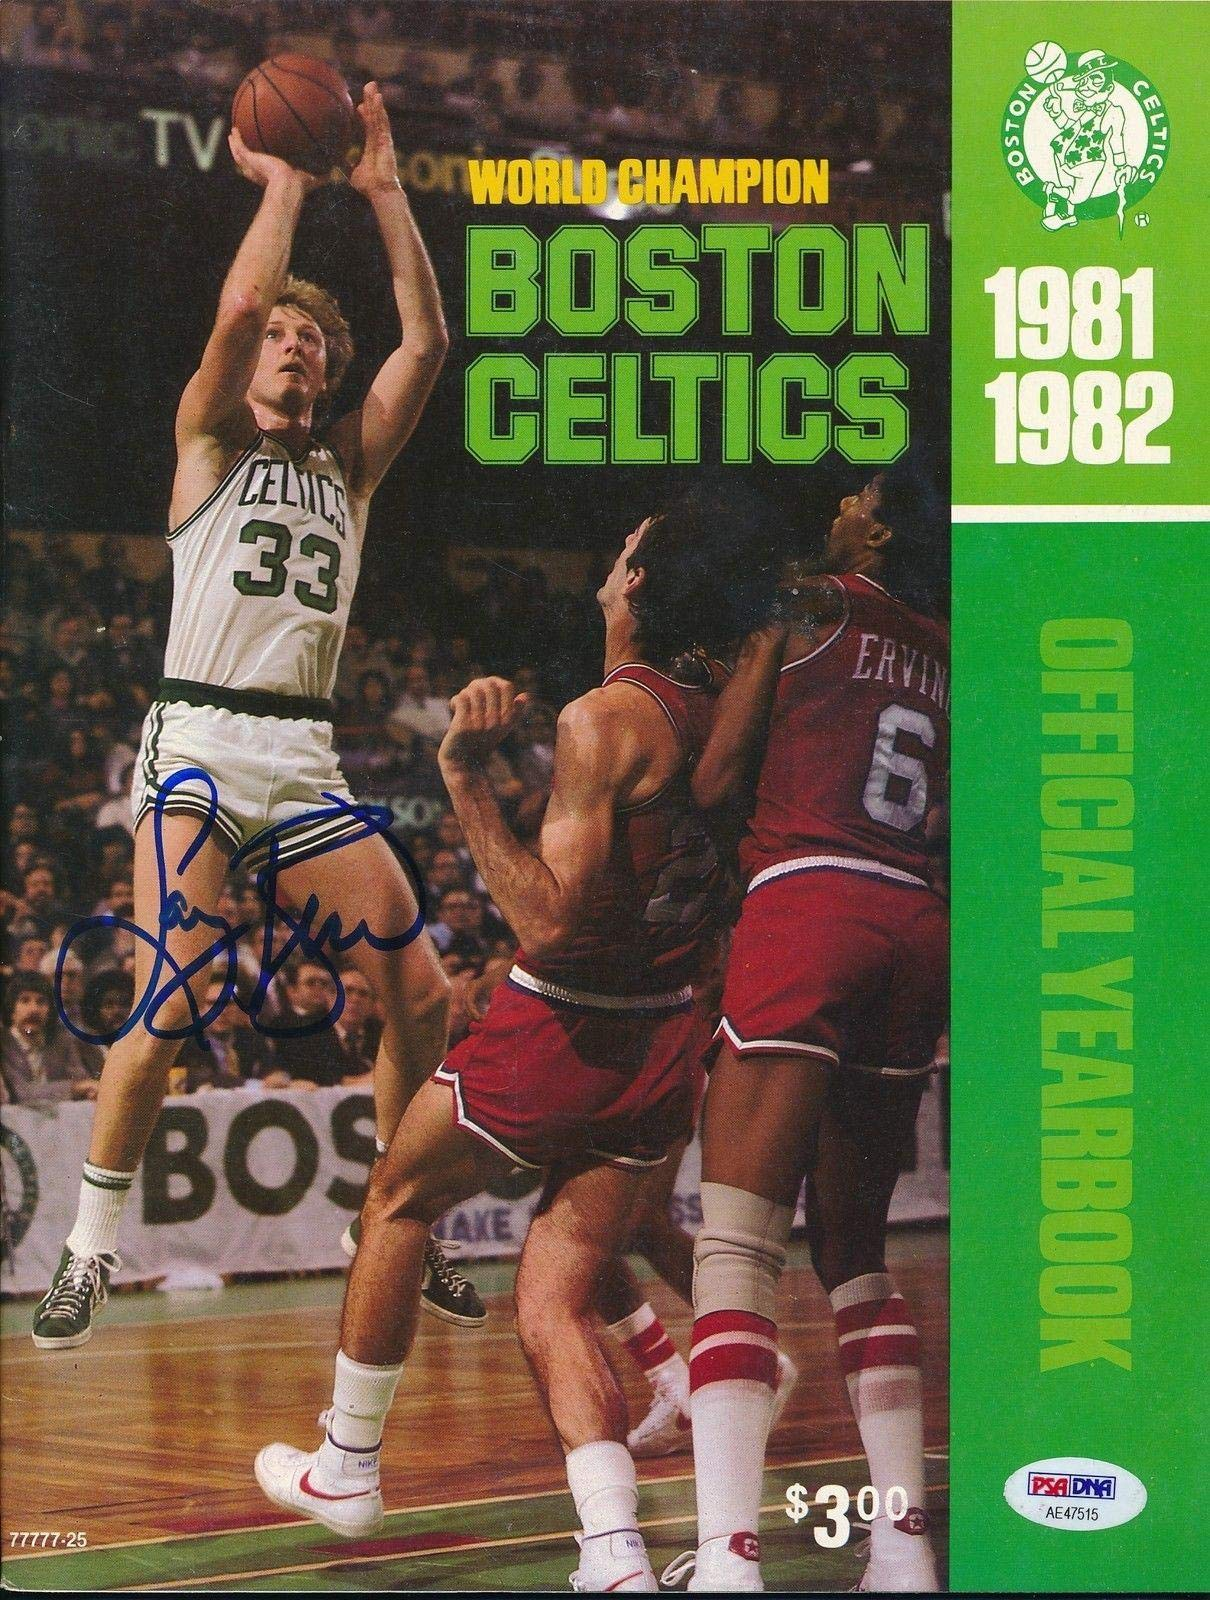 Larry Bird Signed 1981/82 Celtics Yearbook Autograph Auto AE47515 PSA/DNA Certified Autographed NBA Magazines